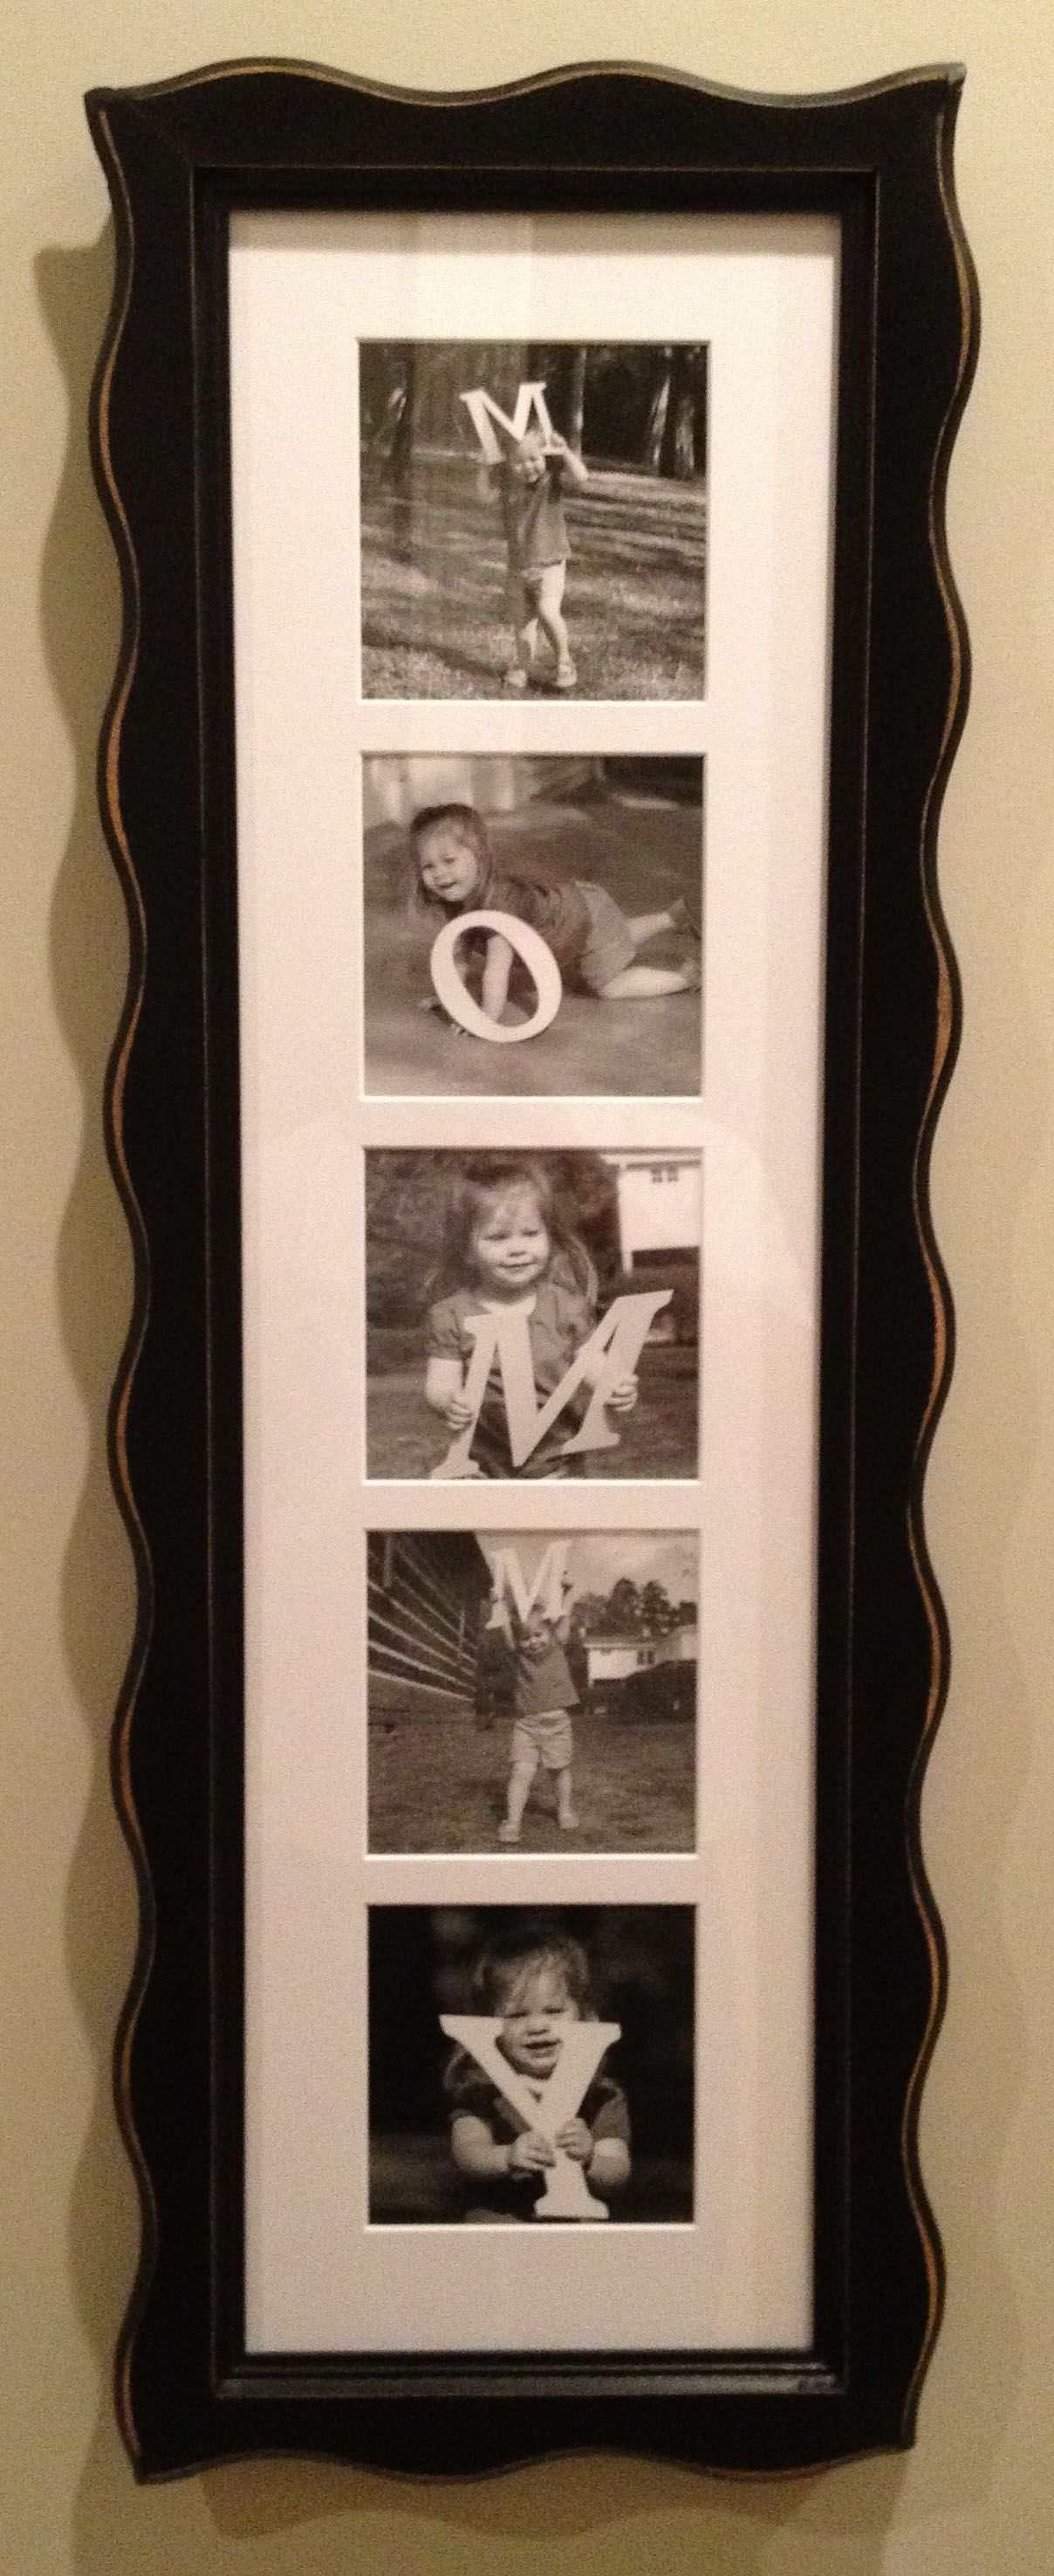 Did this for Mom for mothers day.  I got wooden letters and painted them, then took photos and got them framed.  I plan on doing it every few years as the kids grow up.  Hint only buy one M.  Or one D if your doing it for Dad.  Wooden letters can be found here: http://www.craftcuts.com/wooden-letters.html.